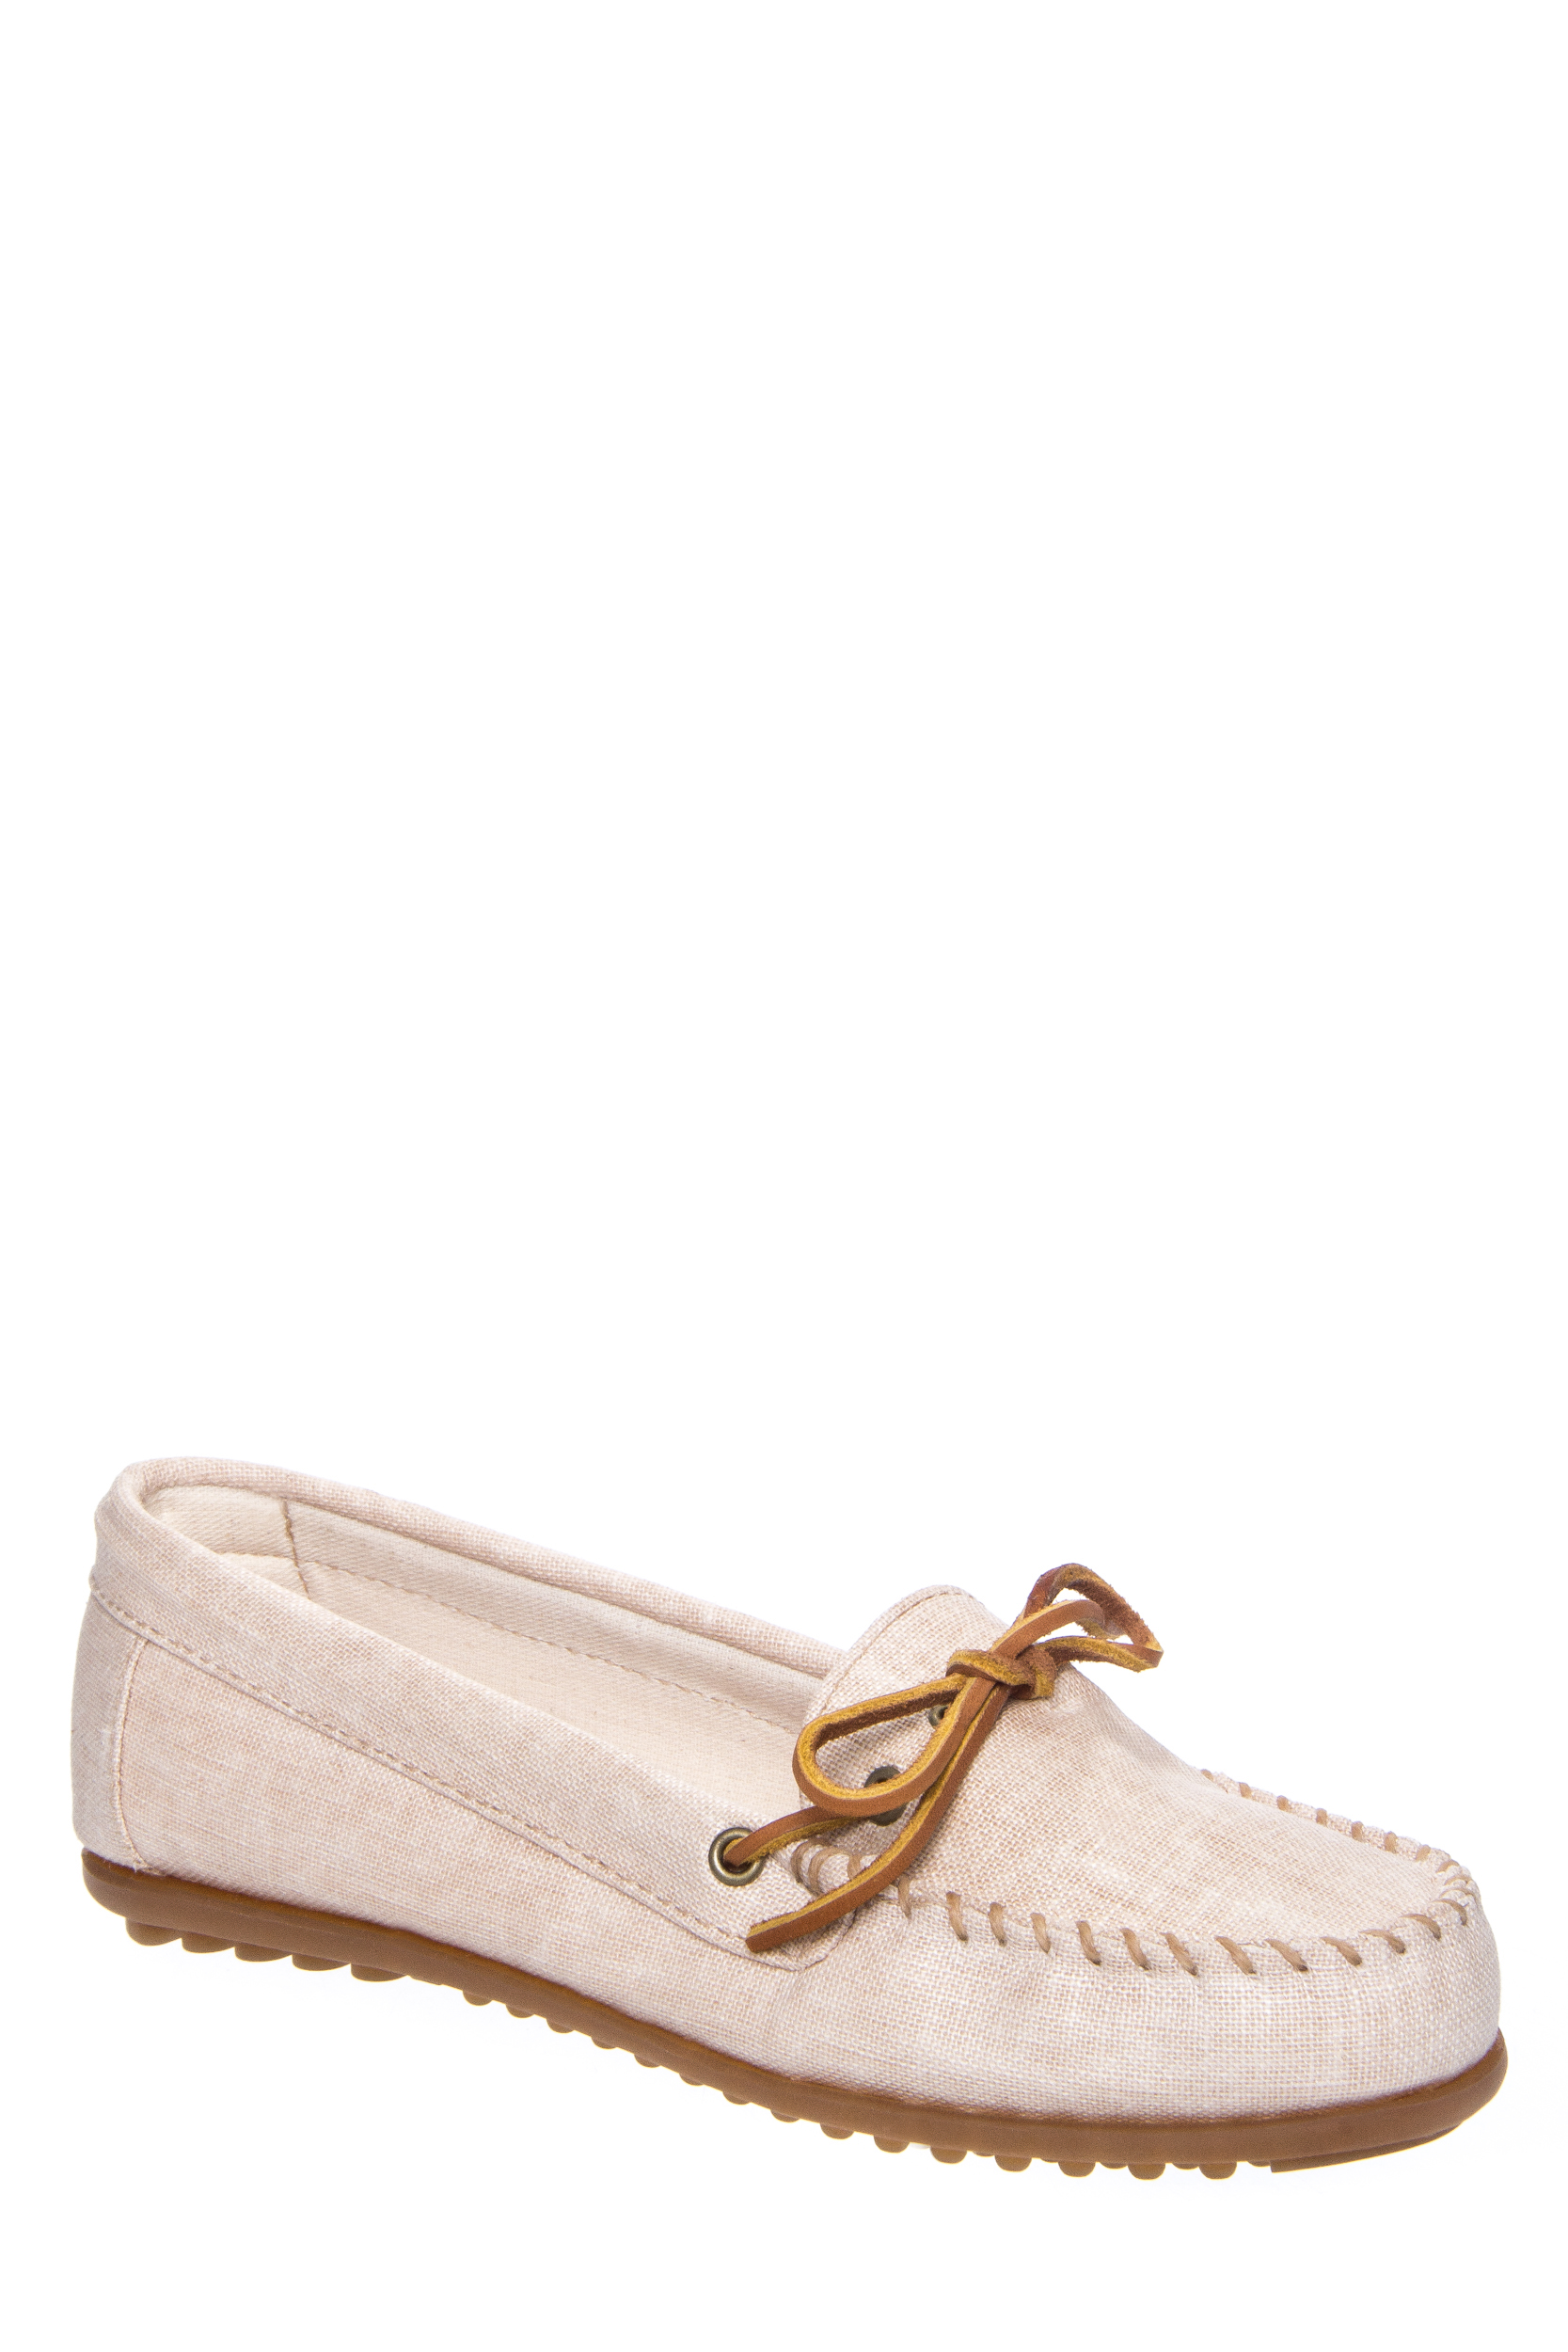 Click here to buy Minnetonka 231 Canvas Moccasin Flat Shoe Natural.